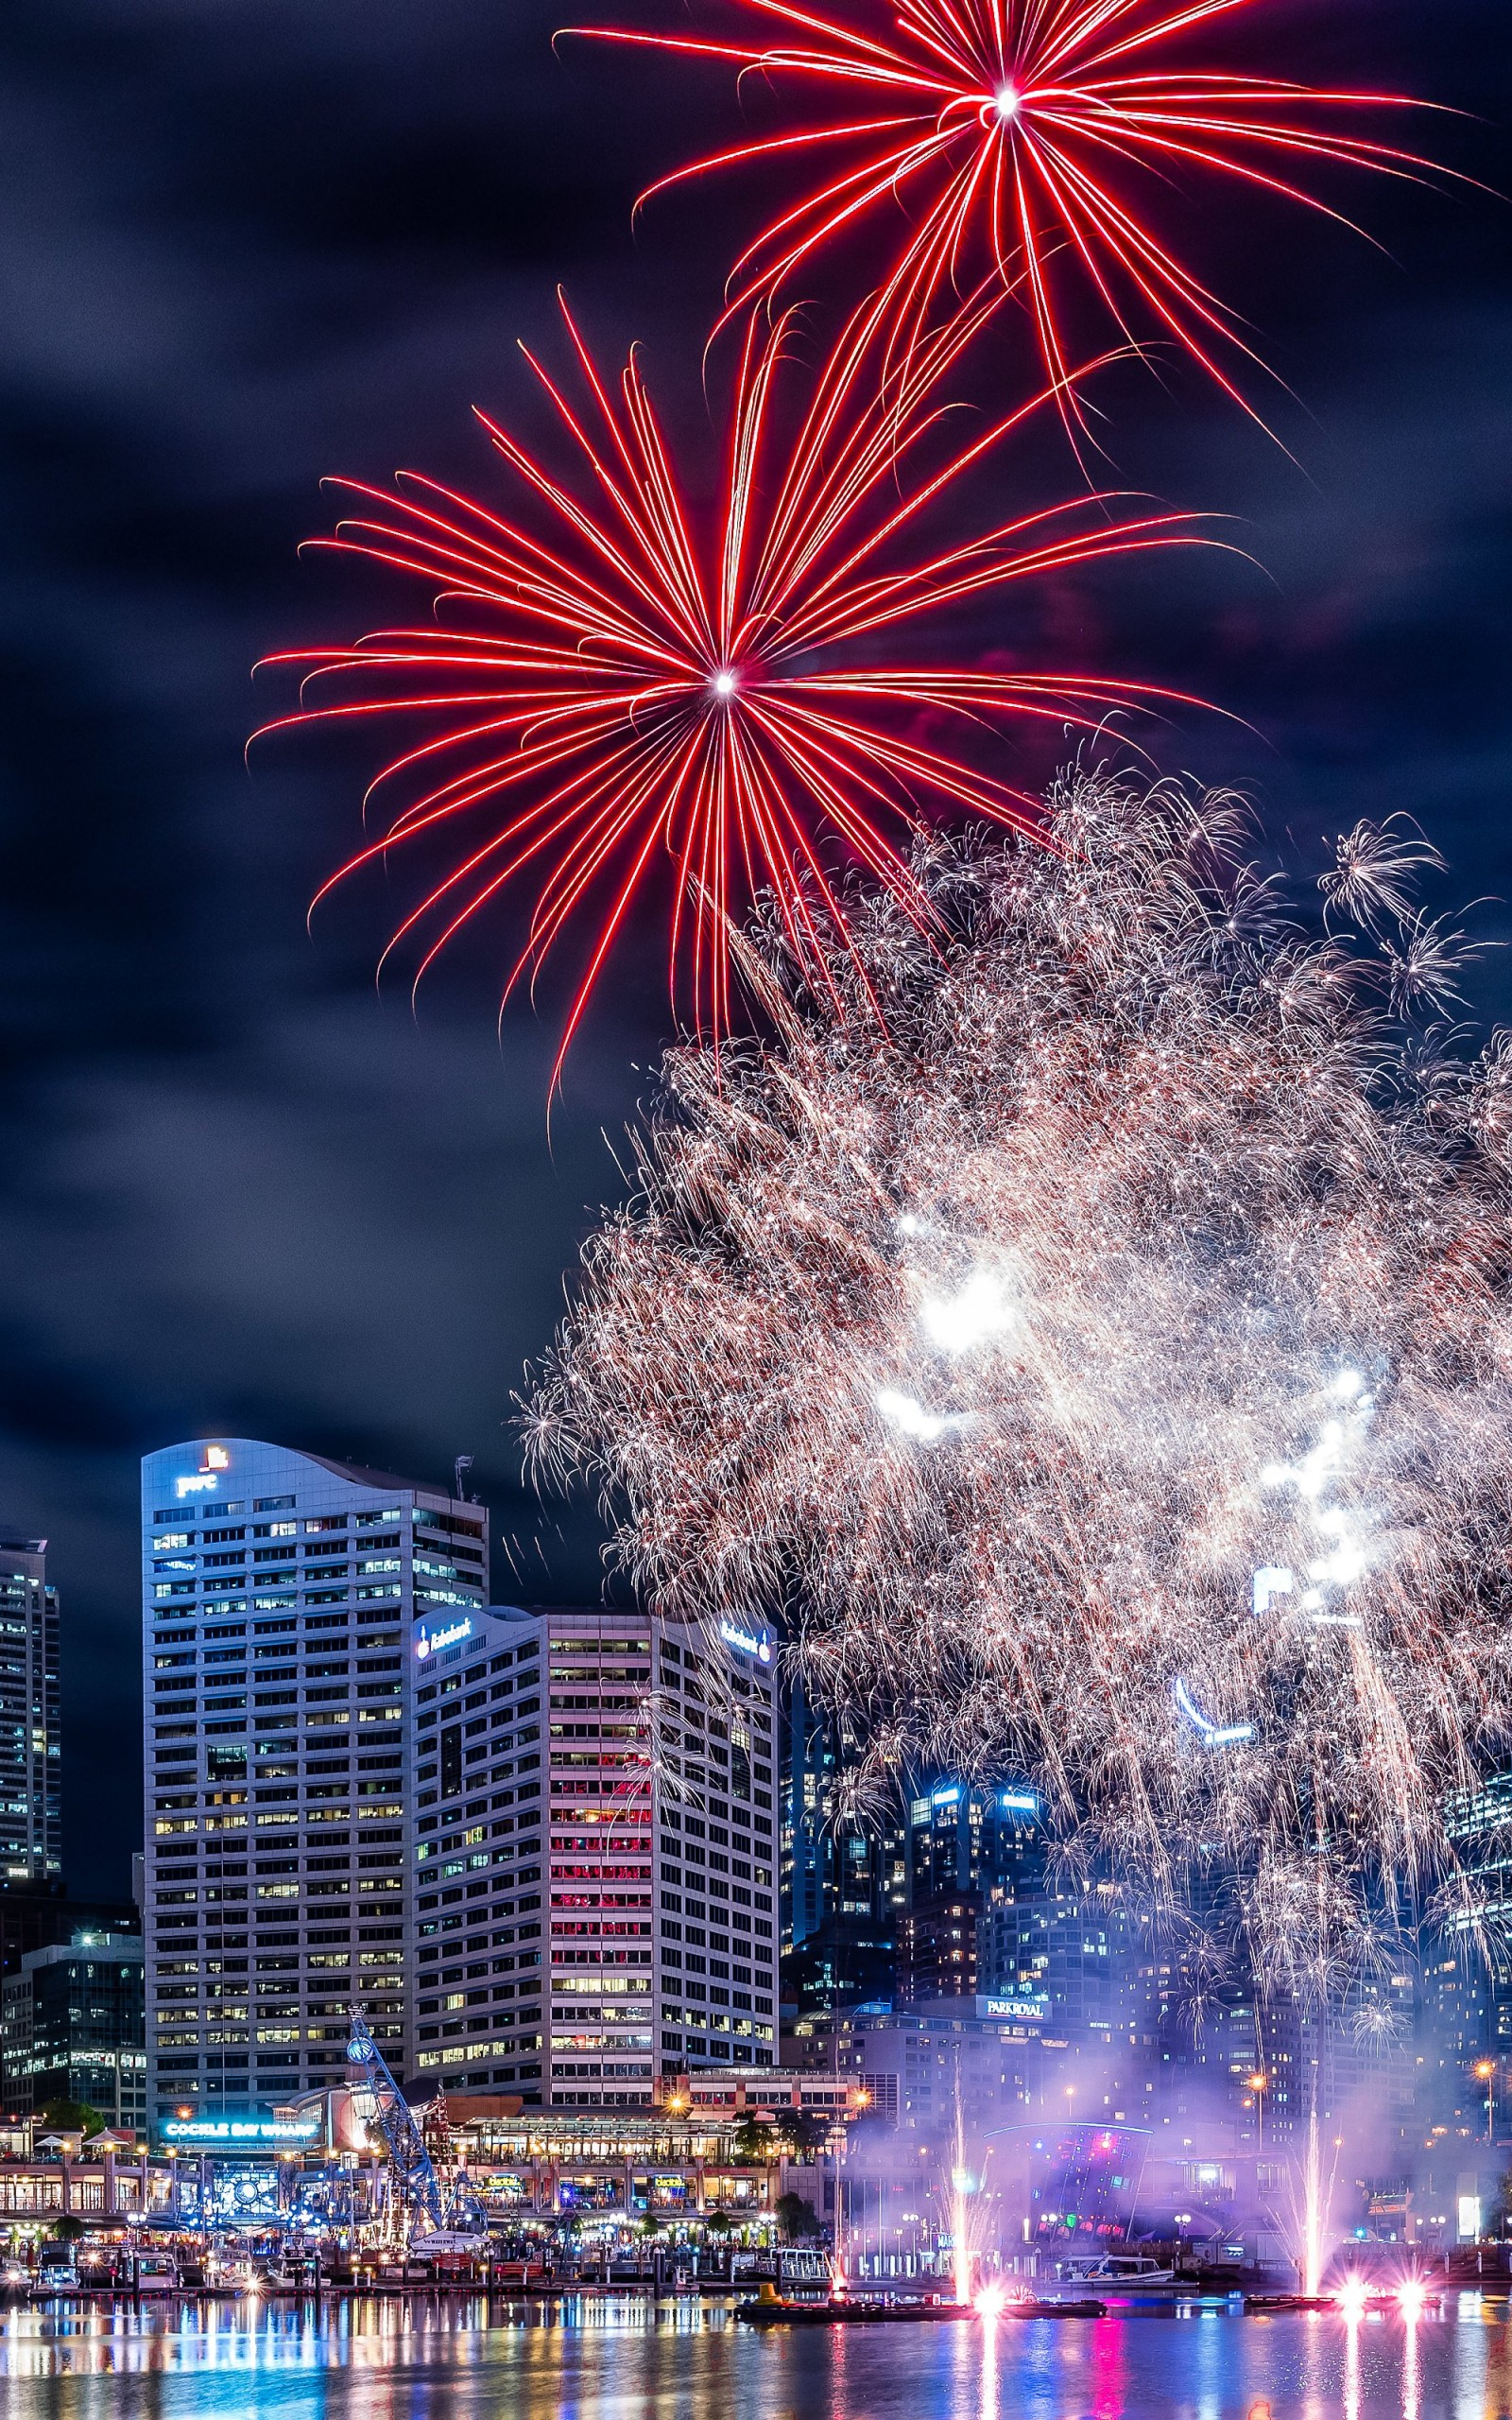 Fireworks In Darling Harbour Wallpaper for Amazon Kindle Fire HDX 8.9